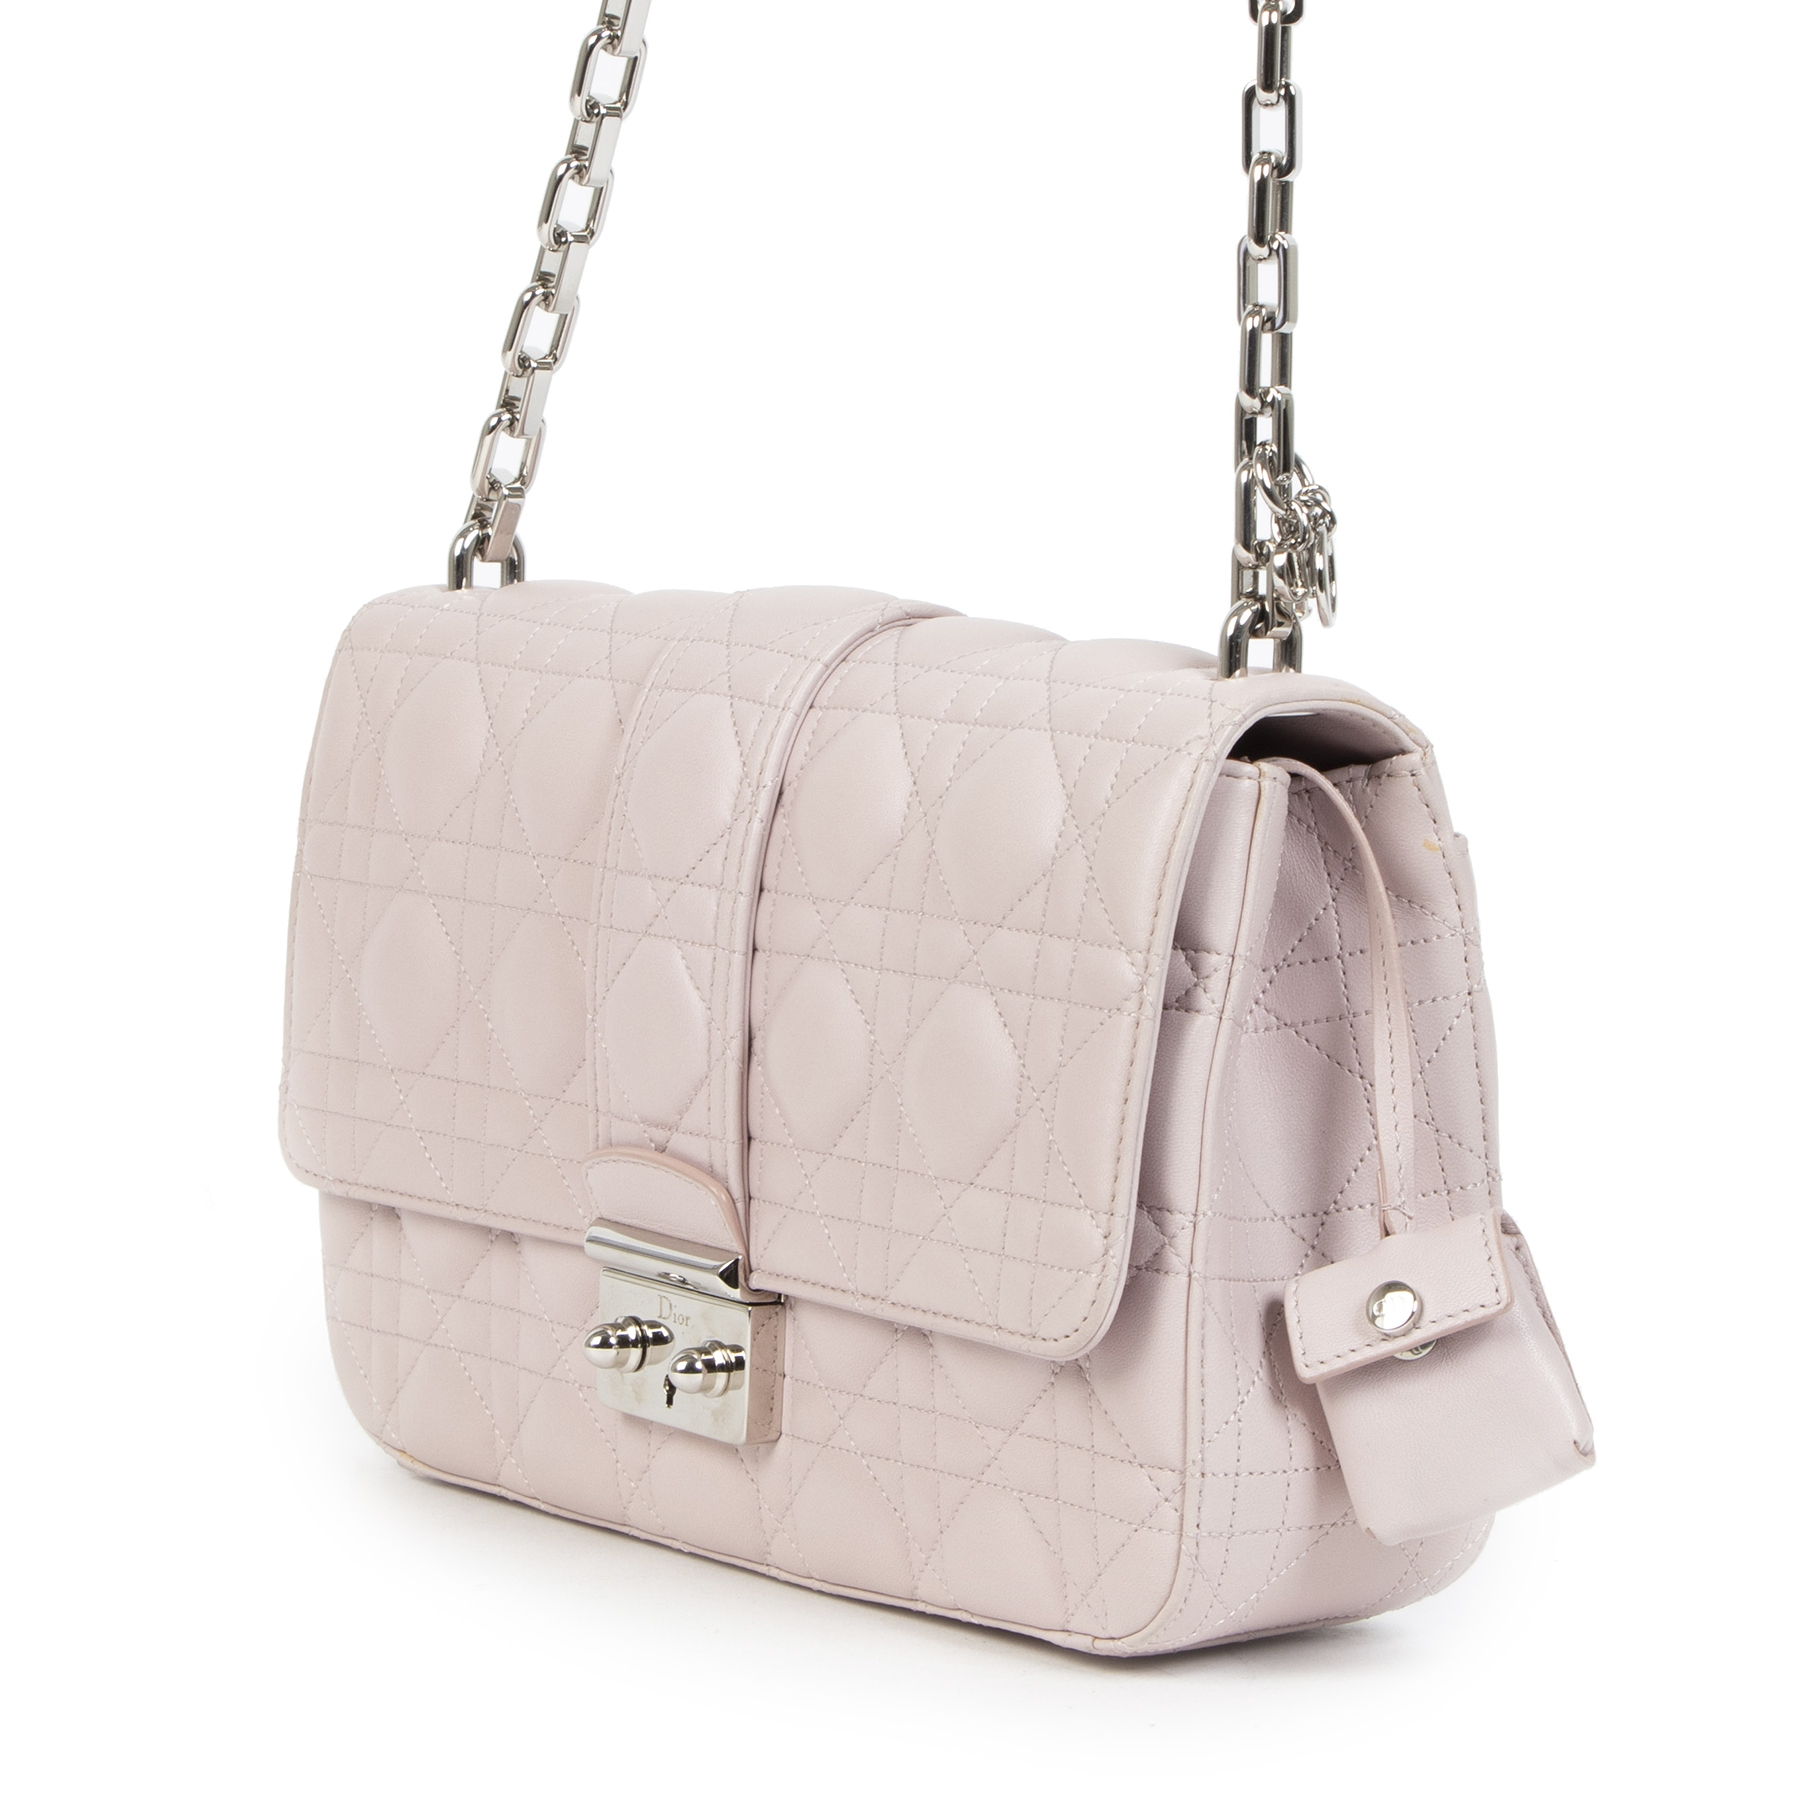 Buy authentic secondhand Dior Miss Dior Pale Pink Cannage Quilted Lambskin Leather Medium Flap Bag at the right price at LabelLOV vintage webshop. Safe and secure online shopping. Koop authentieke tweedehands Dior Miss Dior Pale Pink Cannage Quilted Lambs